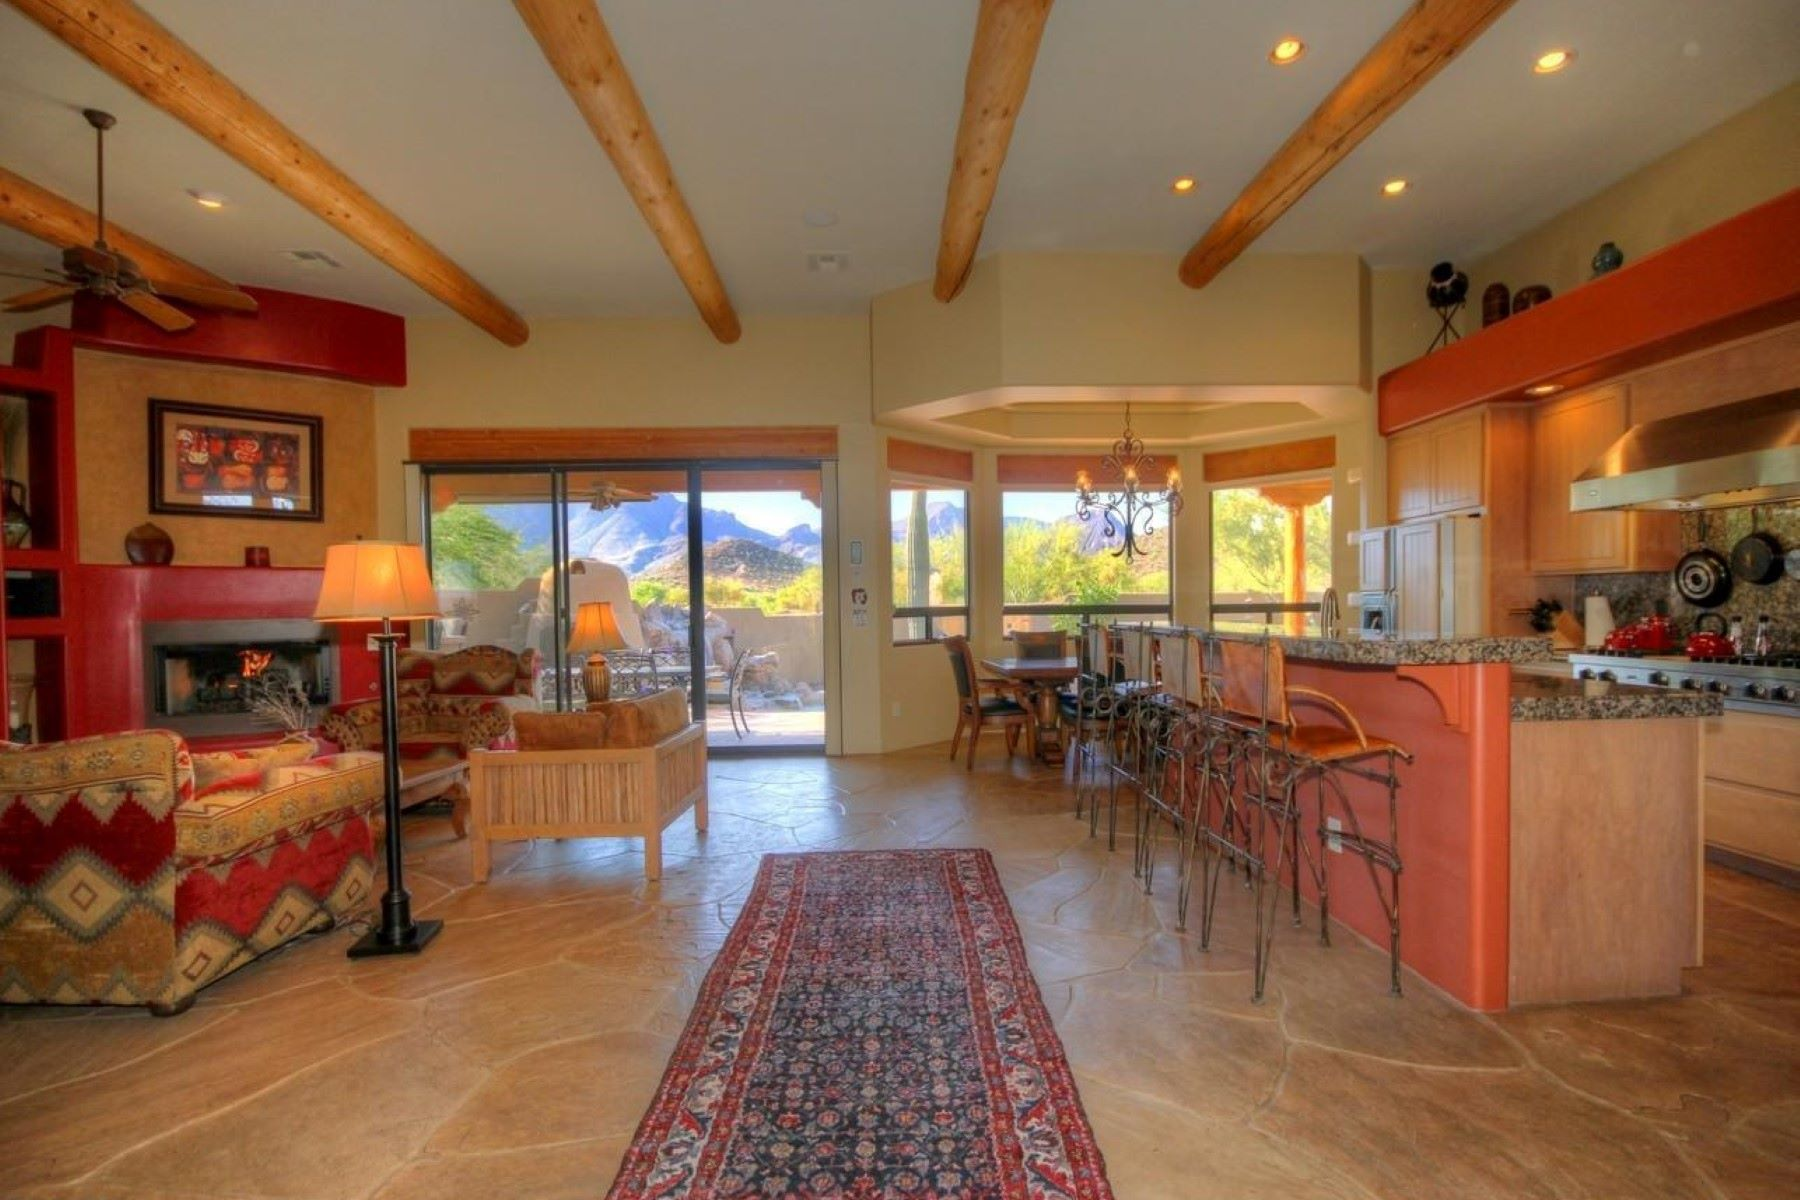 Single Family Home for Sale at Charming home in Cave Creek 5725 E Morning Star RD Cave Creek, Arizona, 85331 United States